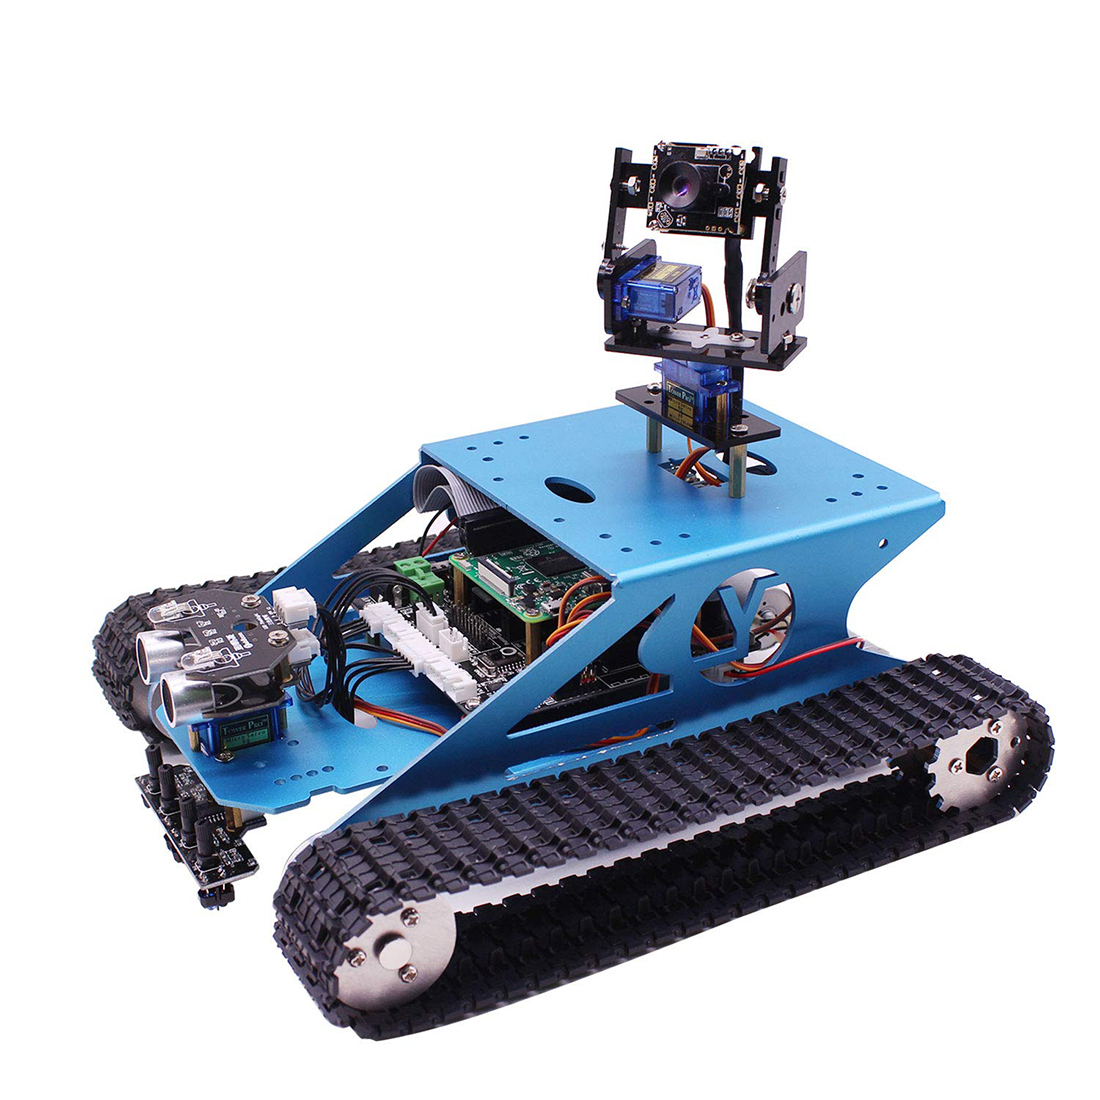 Tracked Tank Smart Robotic Kit Bluetooth Video Programming DIY Self-Balance Car Robot With Raspberry 4B(1/2/4G) Electronic Toy